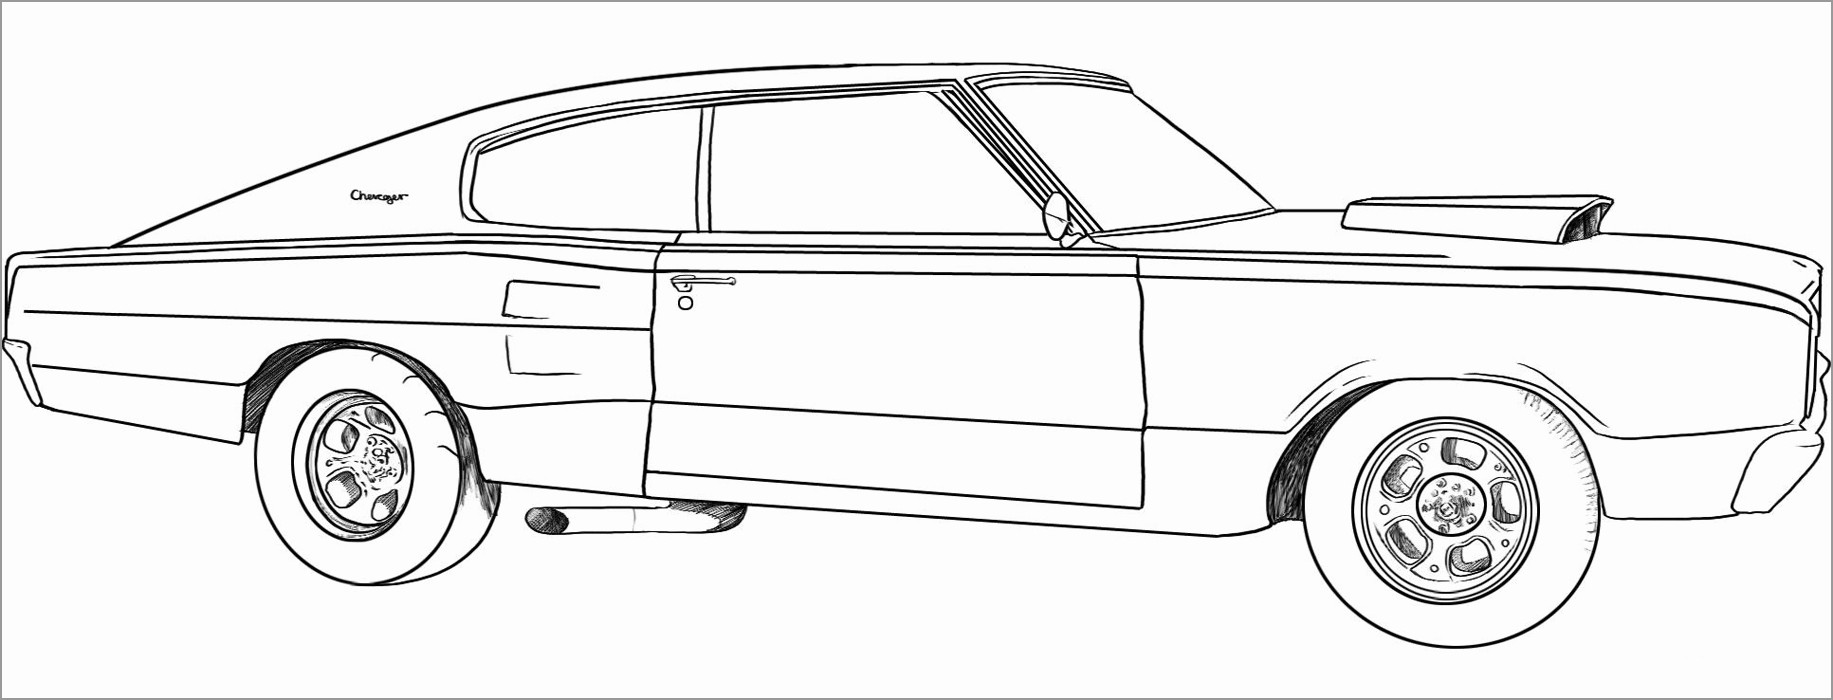 printable muscle car coloring pages muscle car coloring pages to download and print for free coloring car pages muscle printable